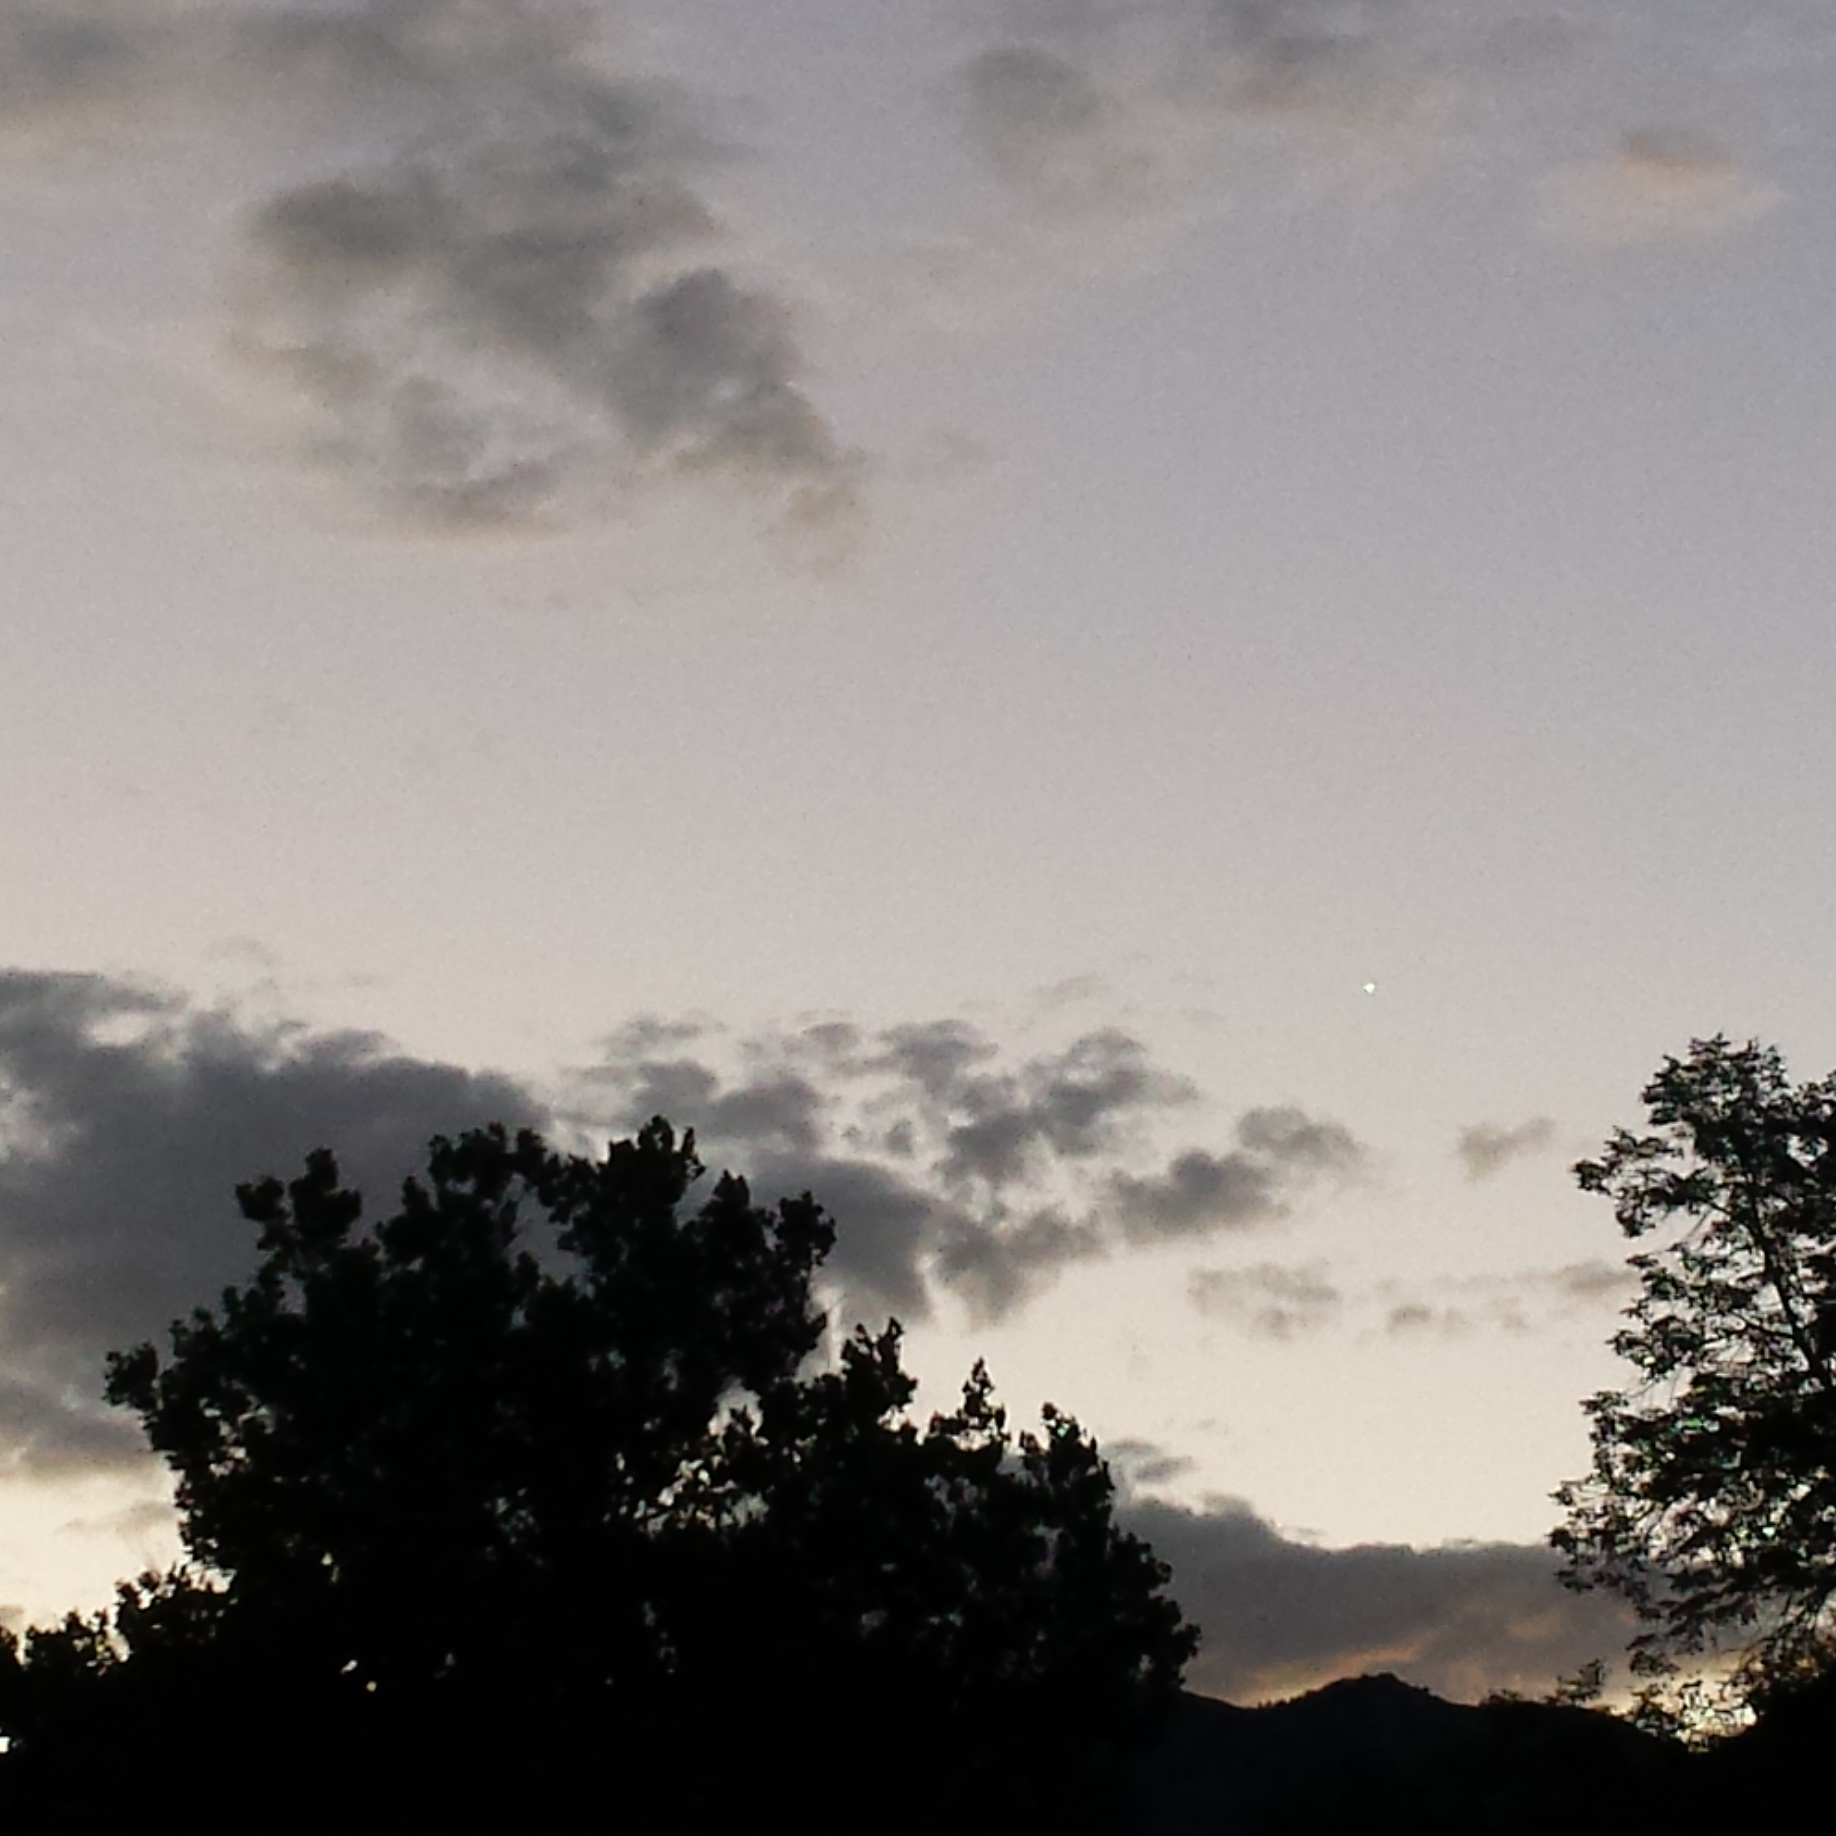 Venus in the morning sky as Lucifer, the lightbringer